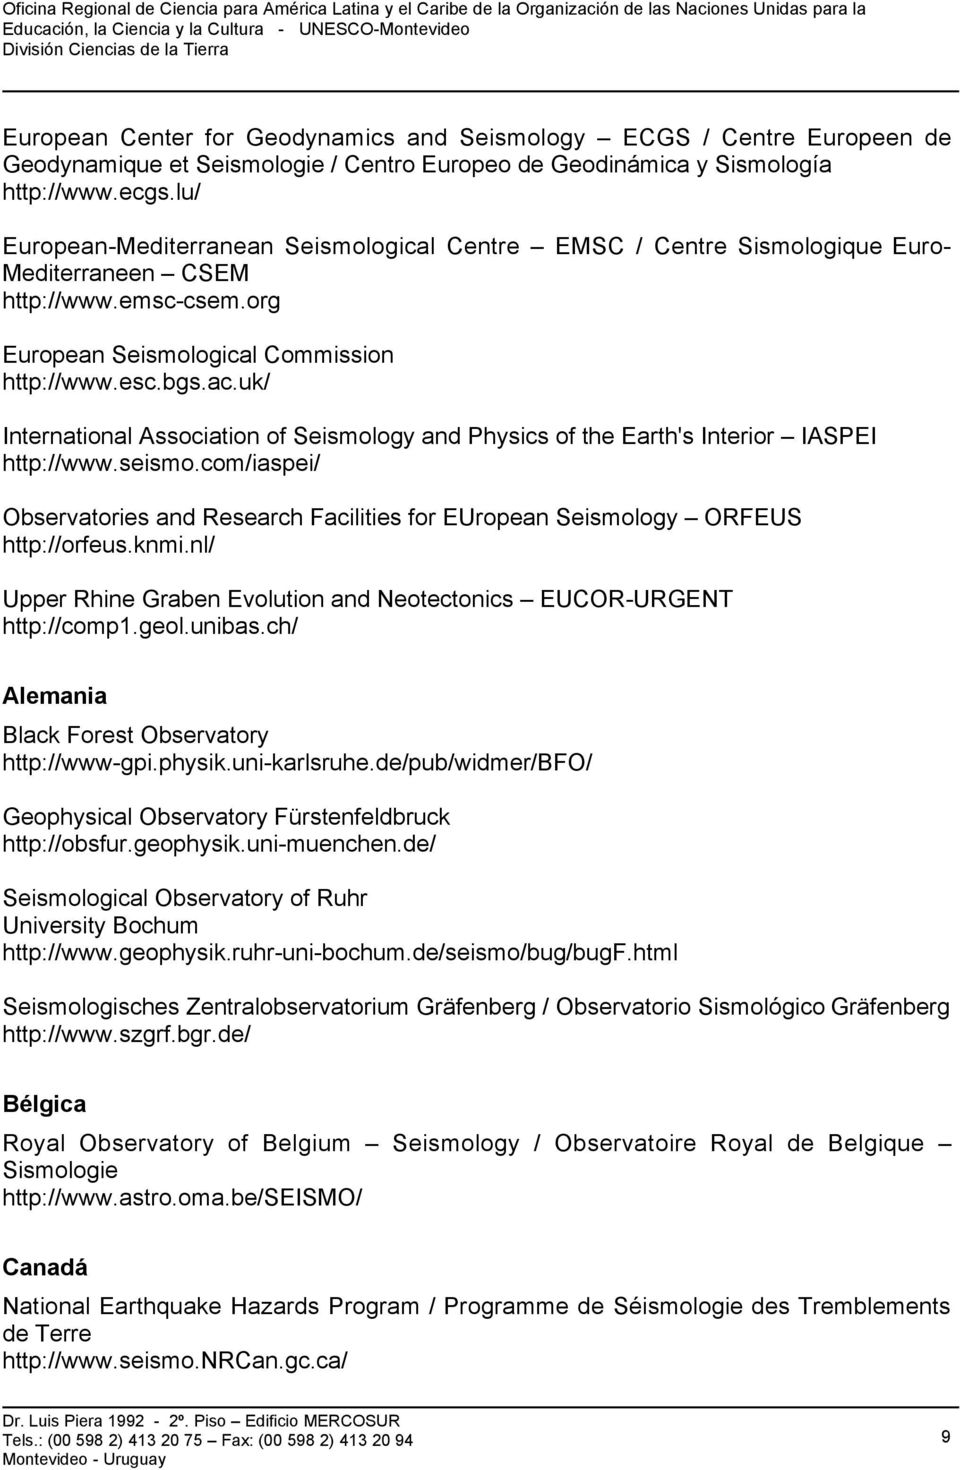 uk/ International Association of Seismology and Physics of the Earth's Interior IASPEI http://www.seismo.com/iaspei/ Observatories and Research Facilities for EUropean Seismology ORFEUS http://orfeus.